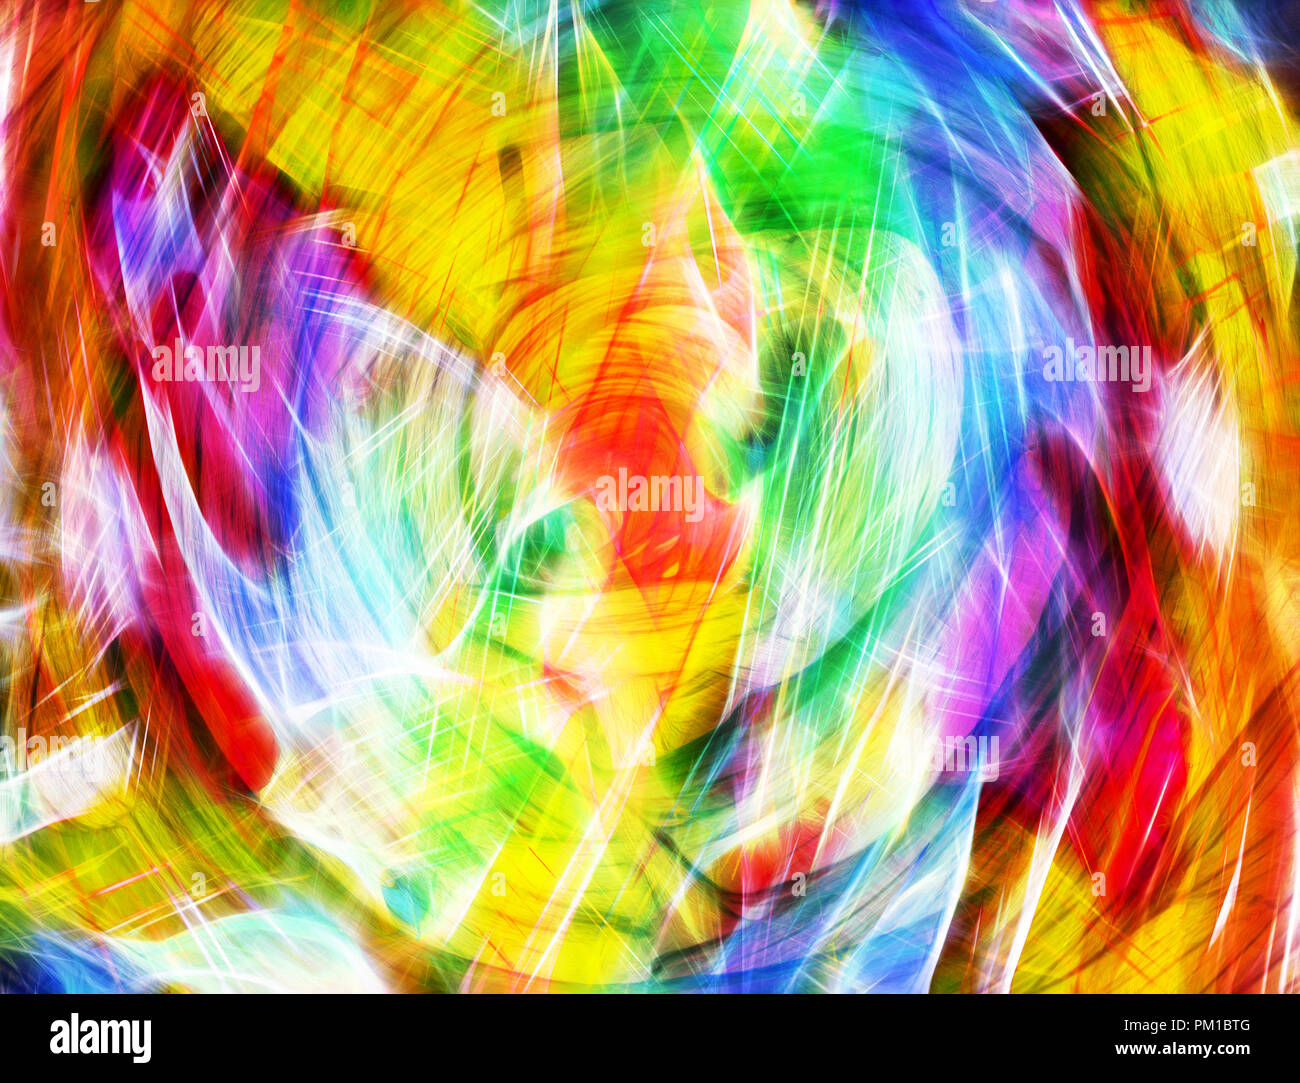 Art Bright Colorful Light Streaks Abstract Background In Blue Red